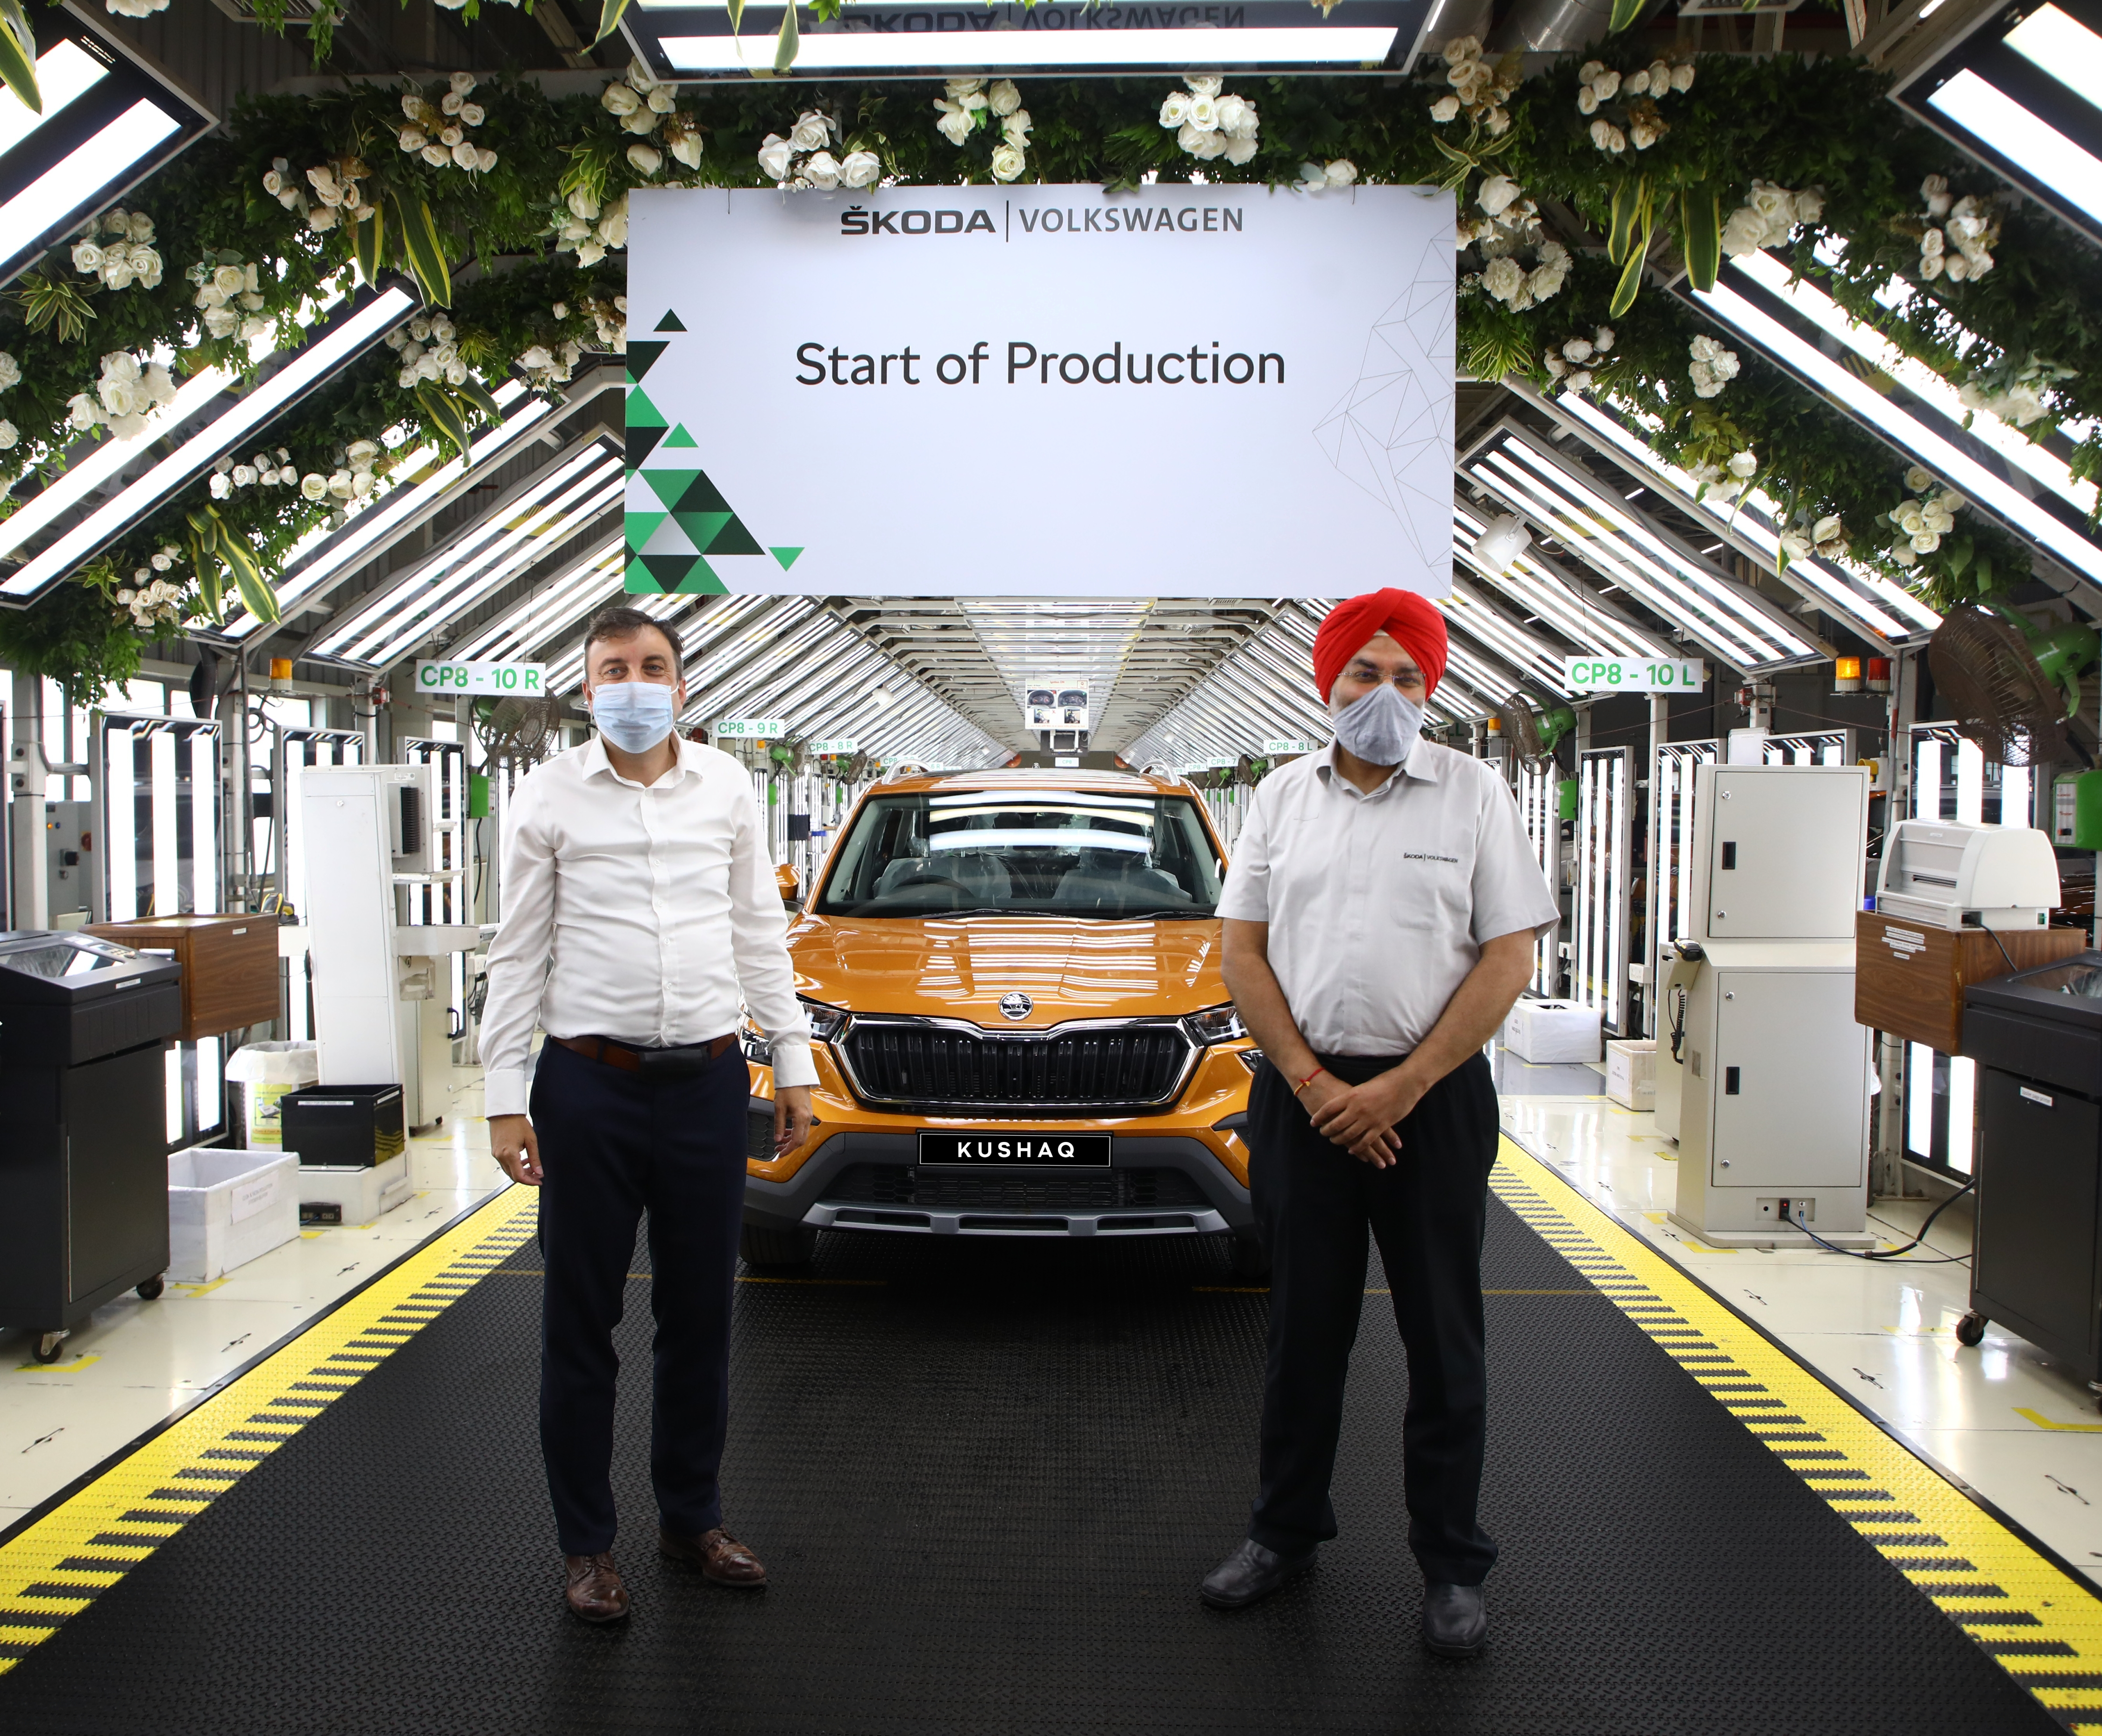 SKODA AUTO Volkswagen India Private Limited launches series production of the new SUV model KUSHAQ - Image 3